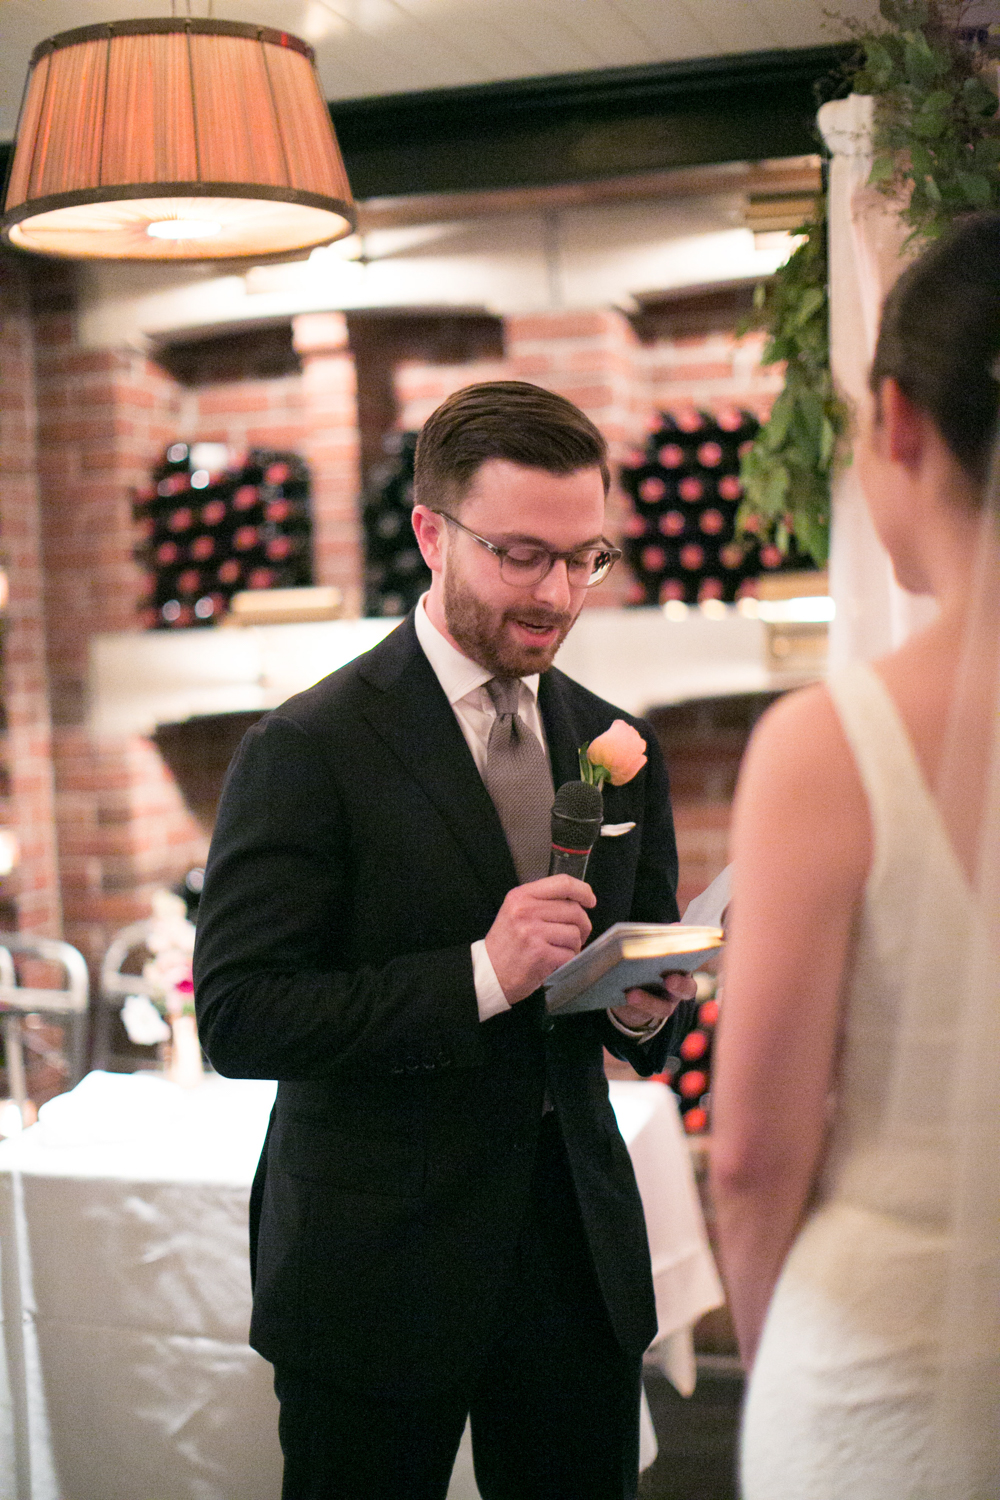 NYC groom reads his wedding vows